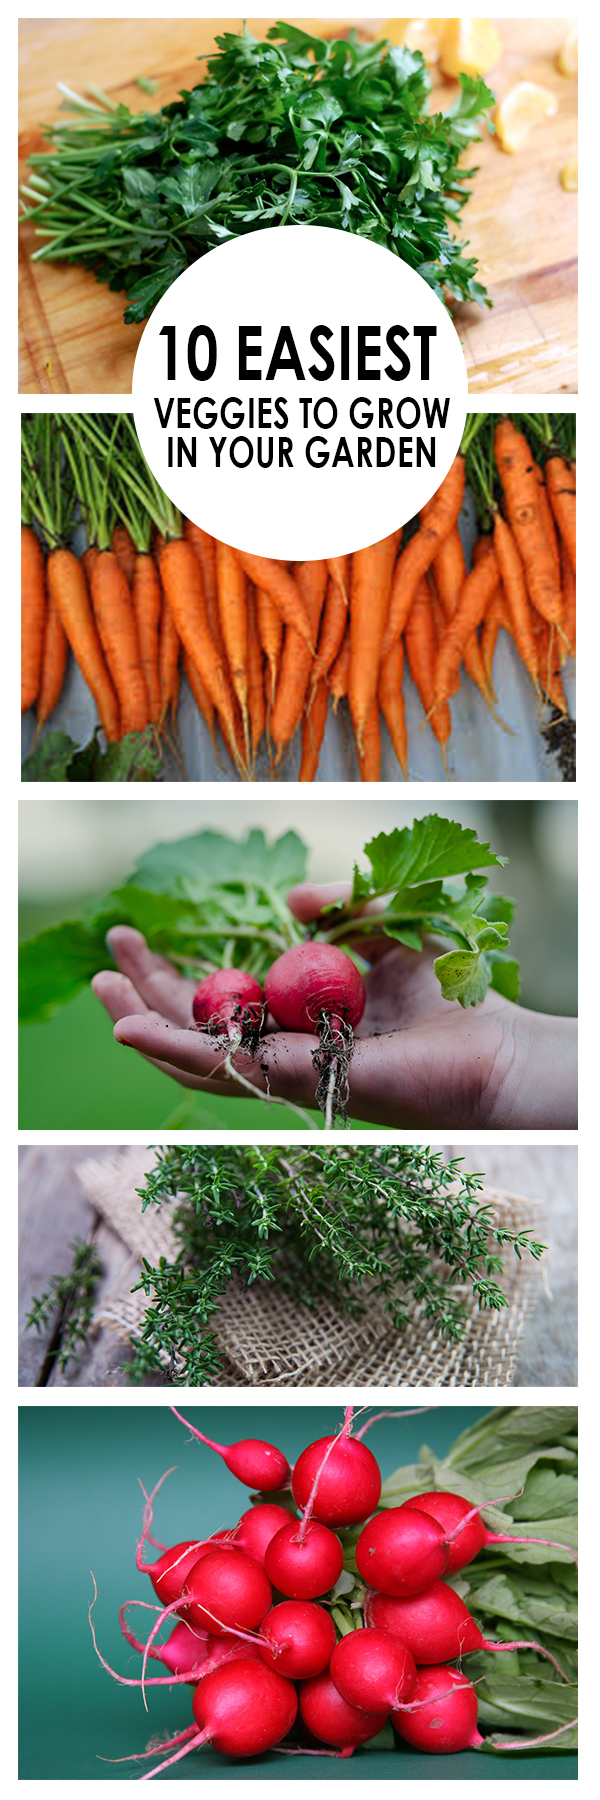 Gardening, home garden, garden hacks, garden tips and tricks, growing plants, gardening DIYs, gardening crafts, popular pin, backyard hacks, backyard tips and tricks, outdoor living, home and garden, vegetable gardening